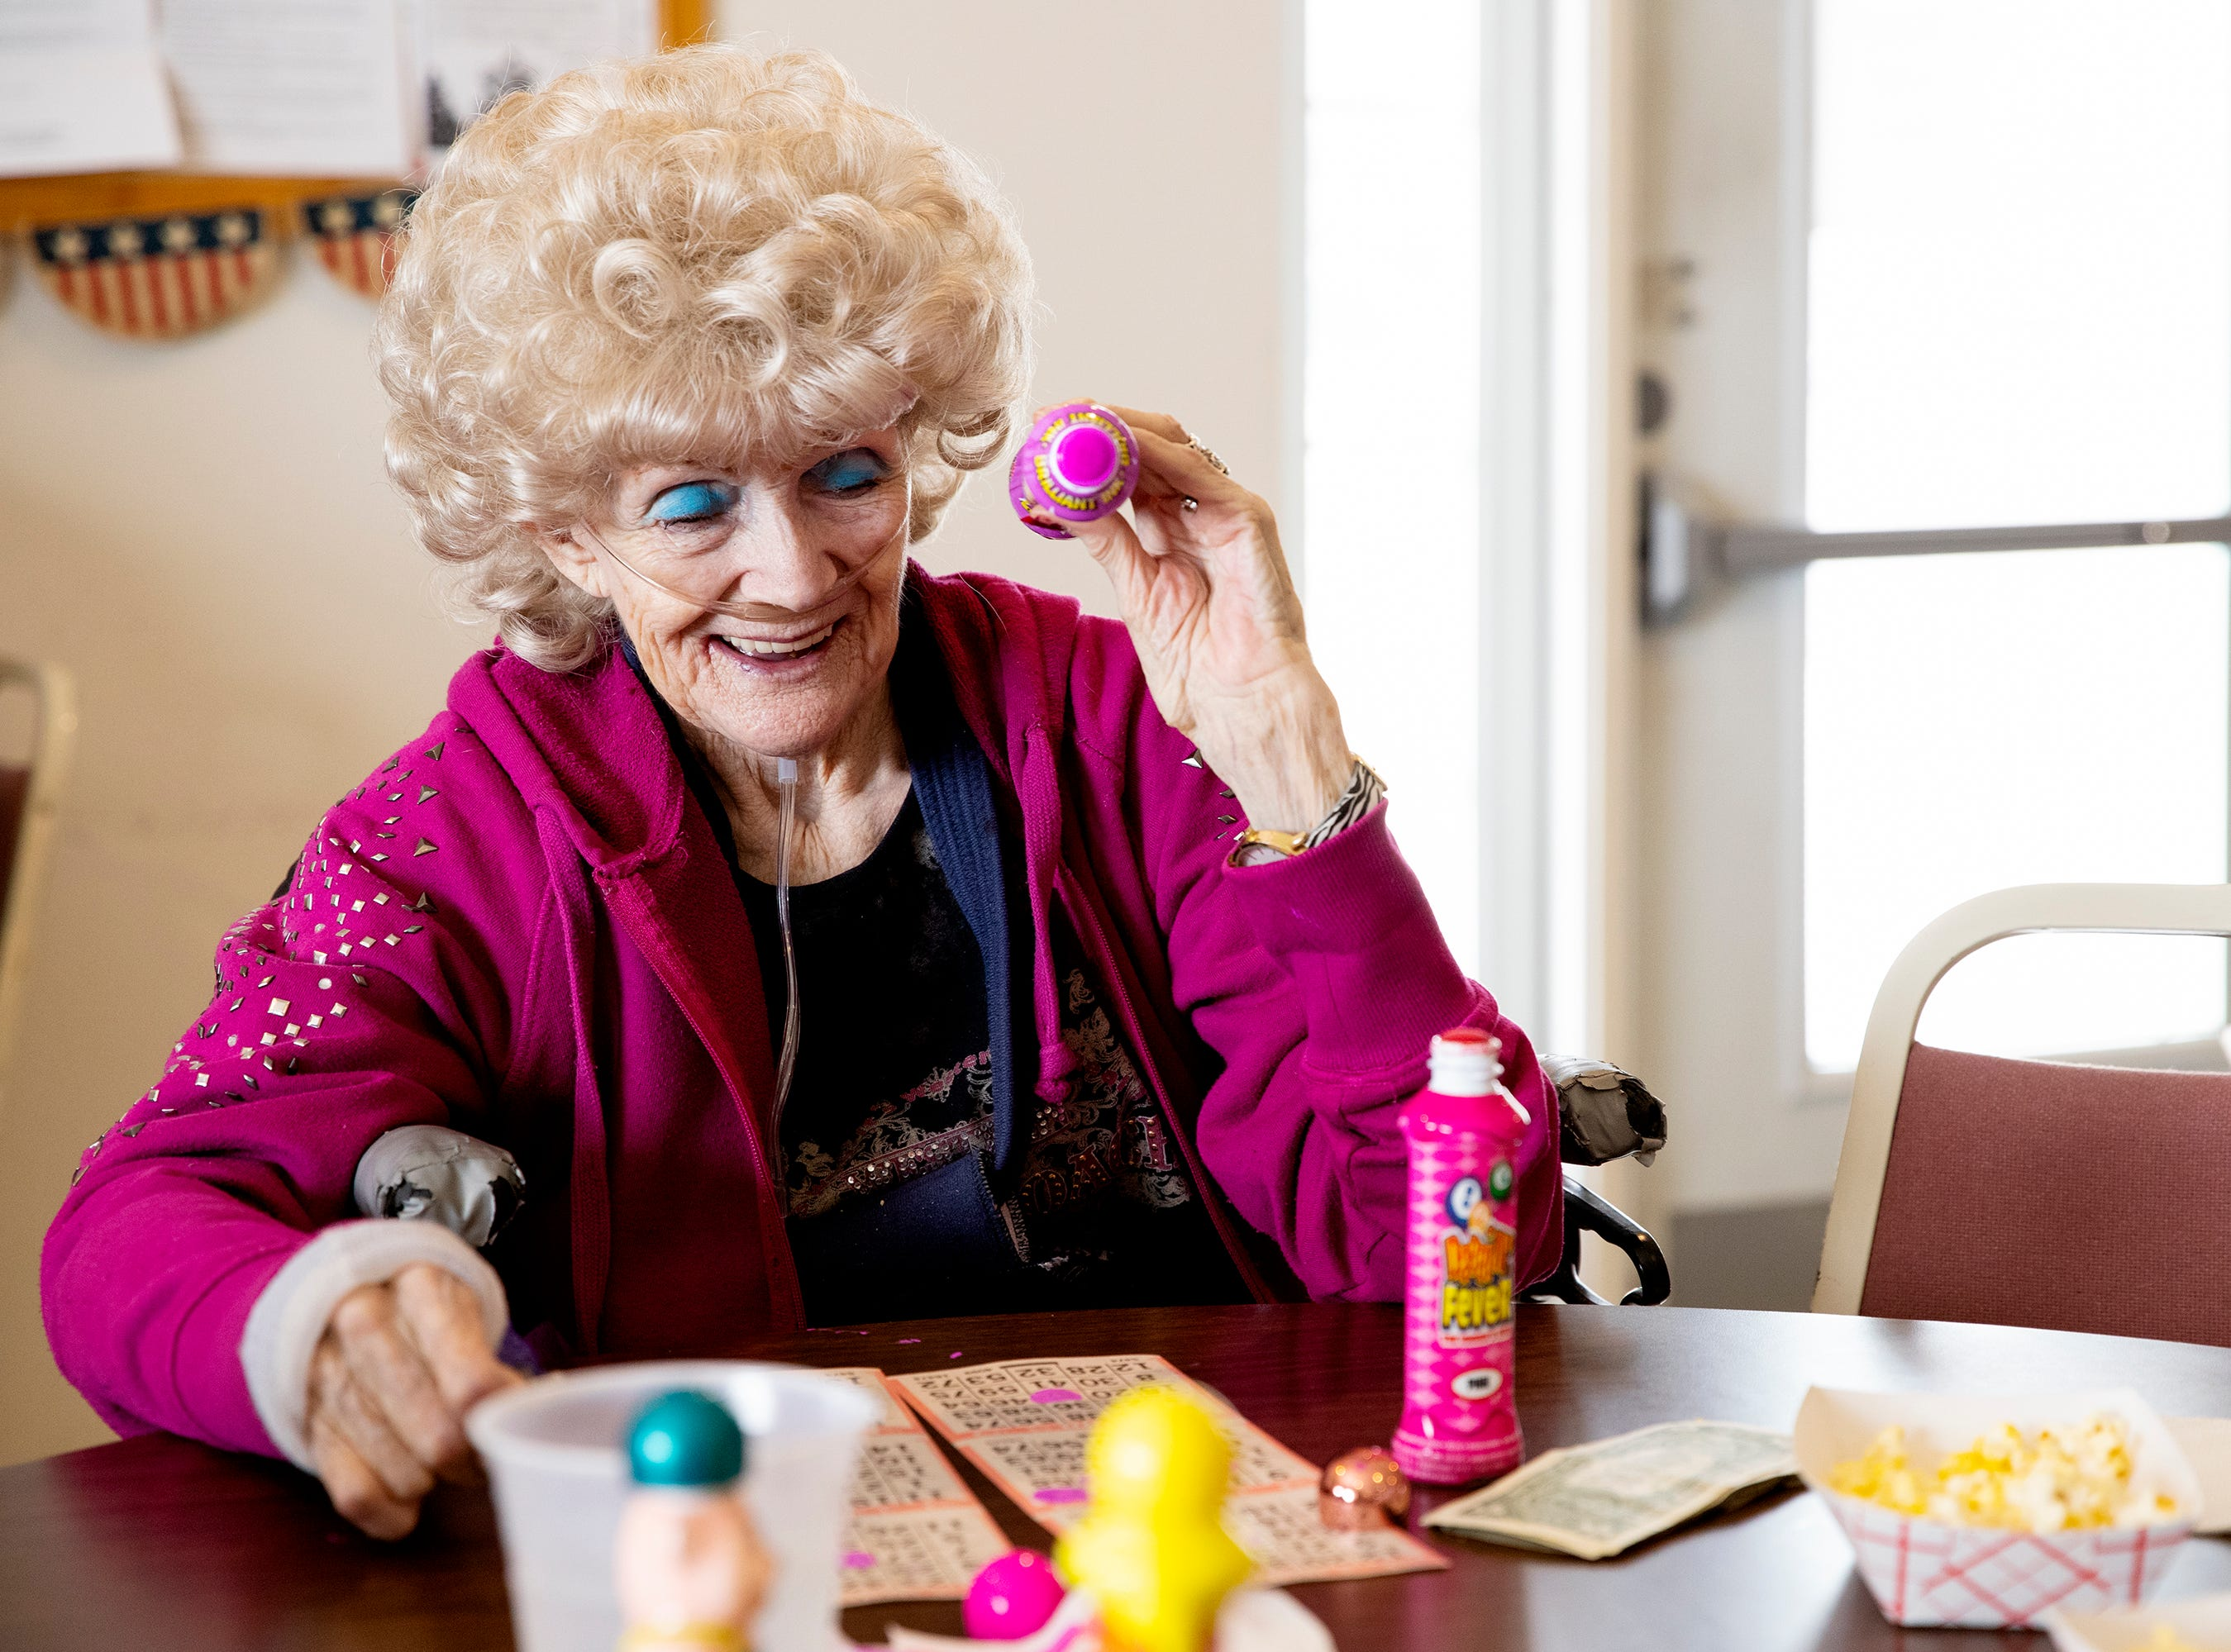 Beverly Anderson laughs as she plays bingo at the George Beach Post No. 4 of the American Legion on March 10. Anderson has been a member of the Legion for at least 50 years and attends the bingo game almost every week.